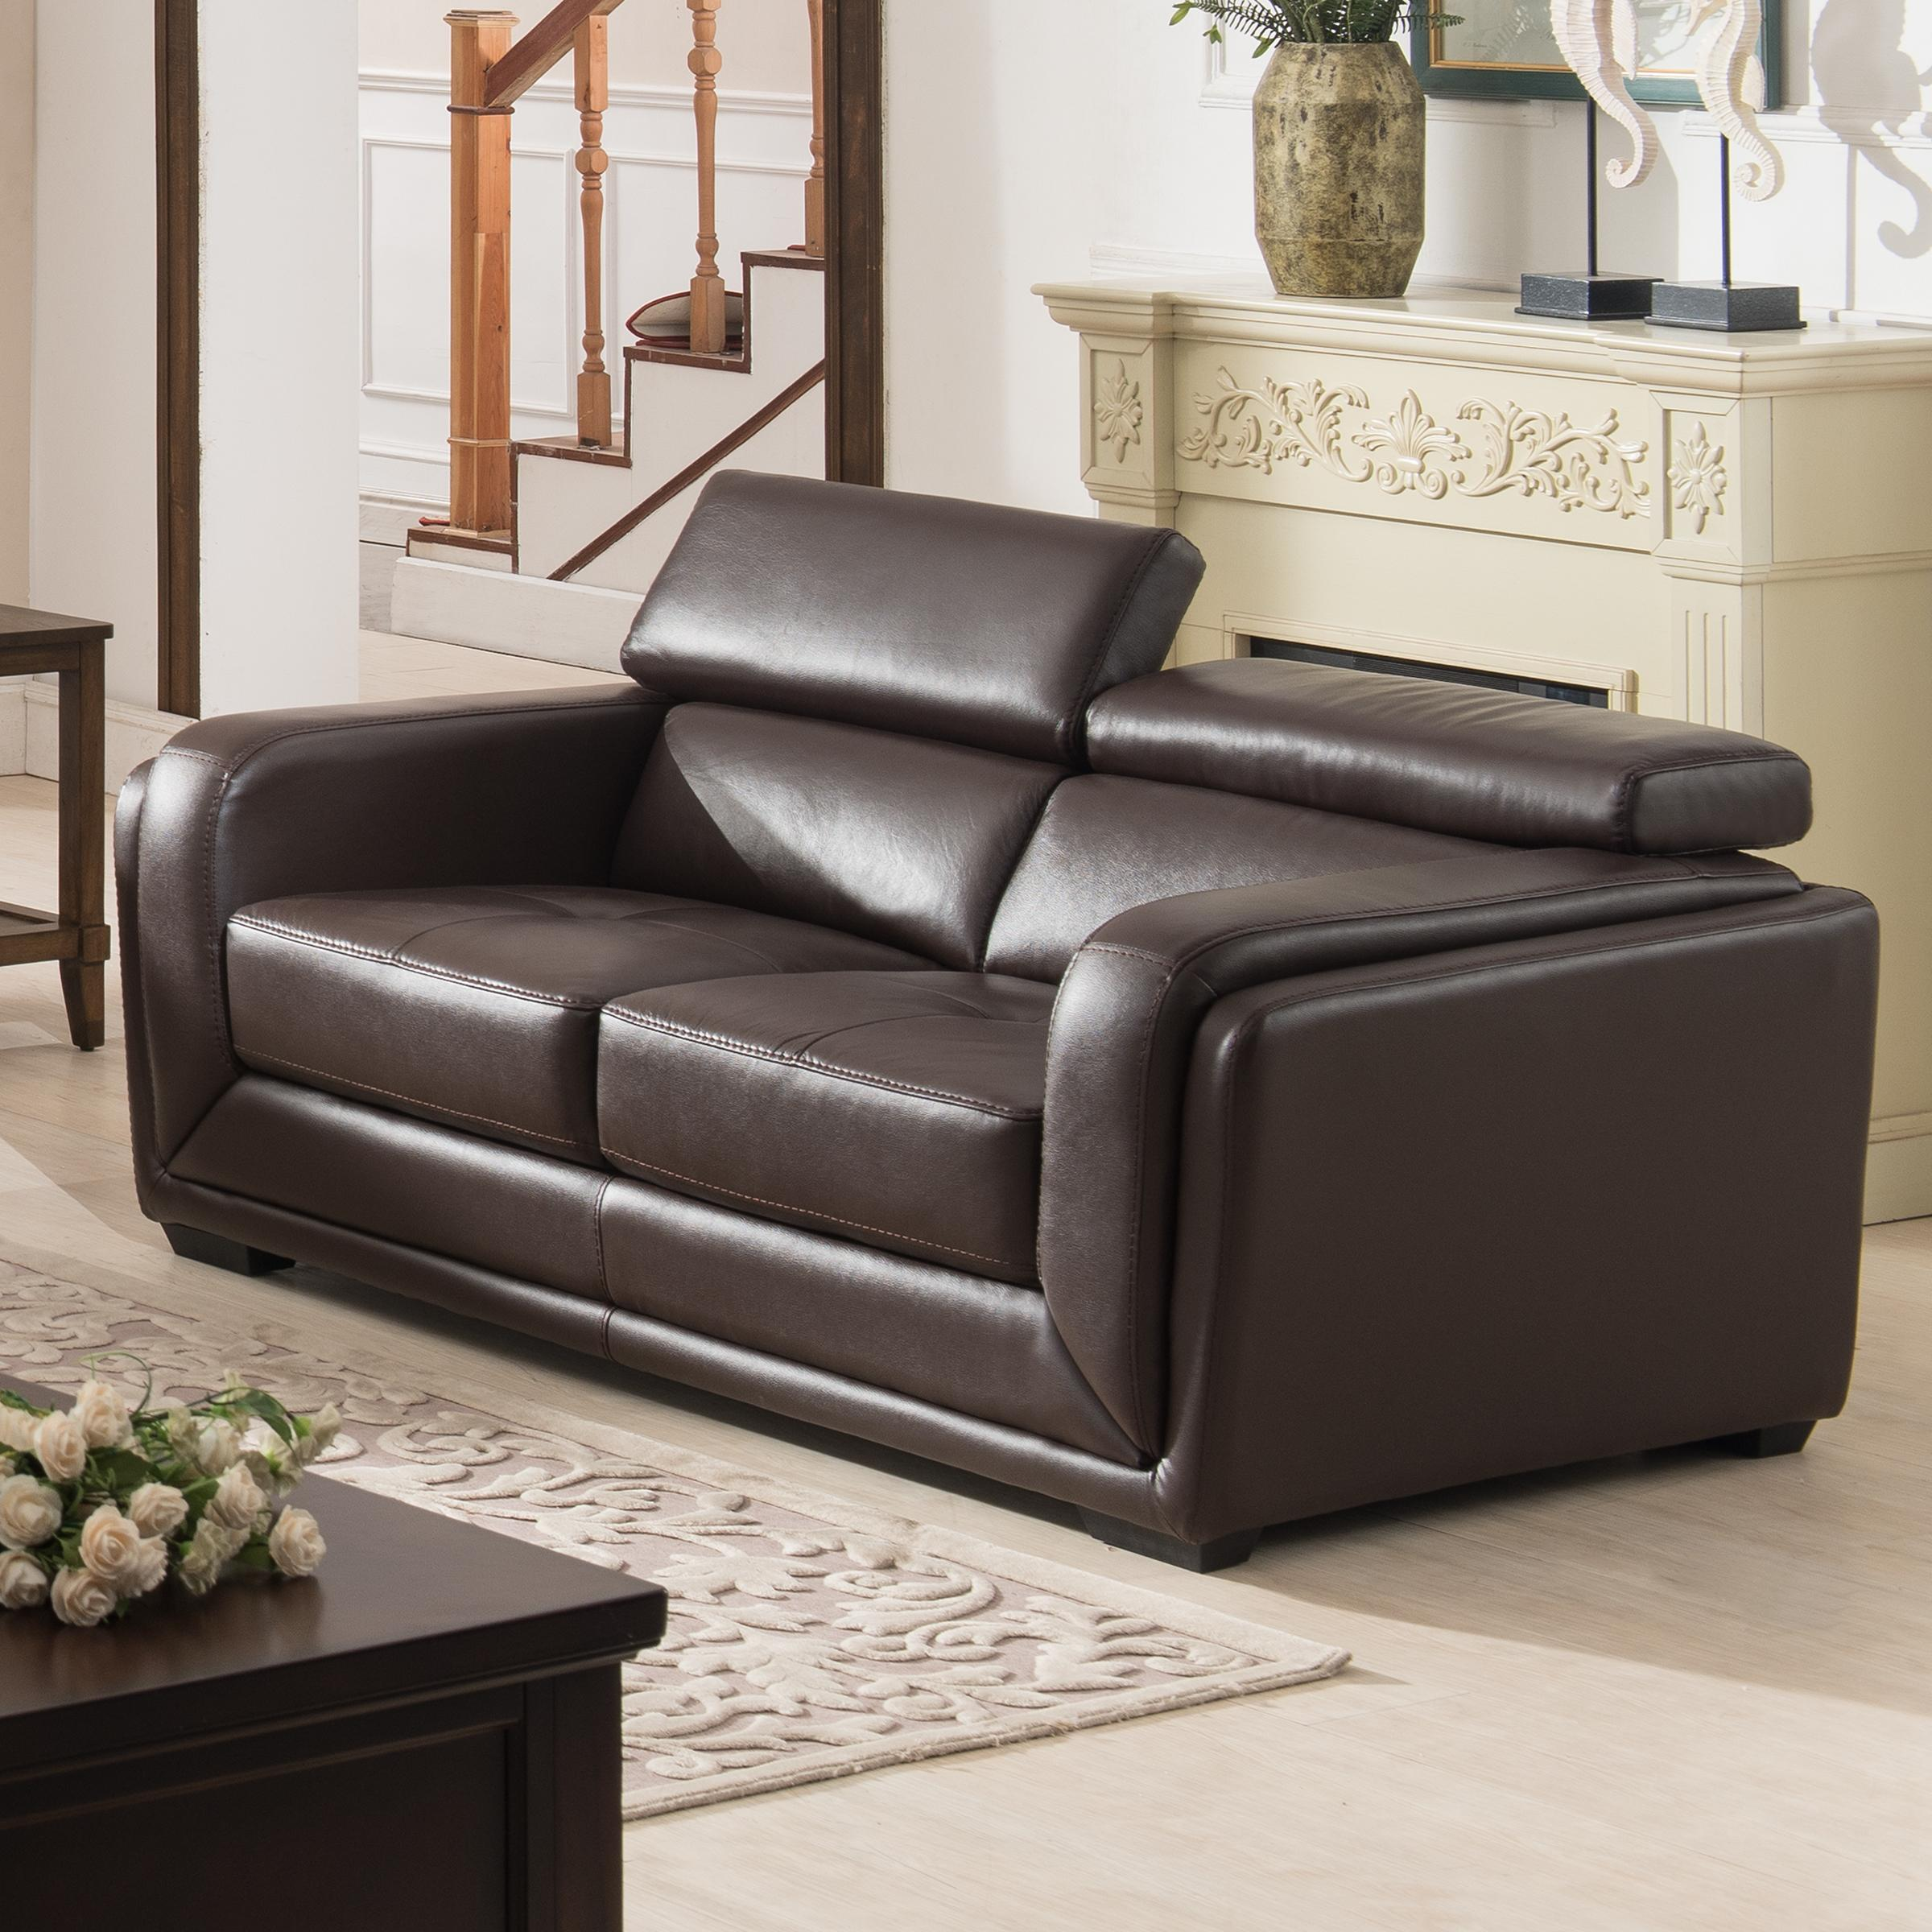 Leather Furniture Traveler Collection: Amazon.com: AC Pacific 2 Piece Calvin Collection Modern